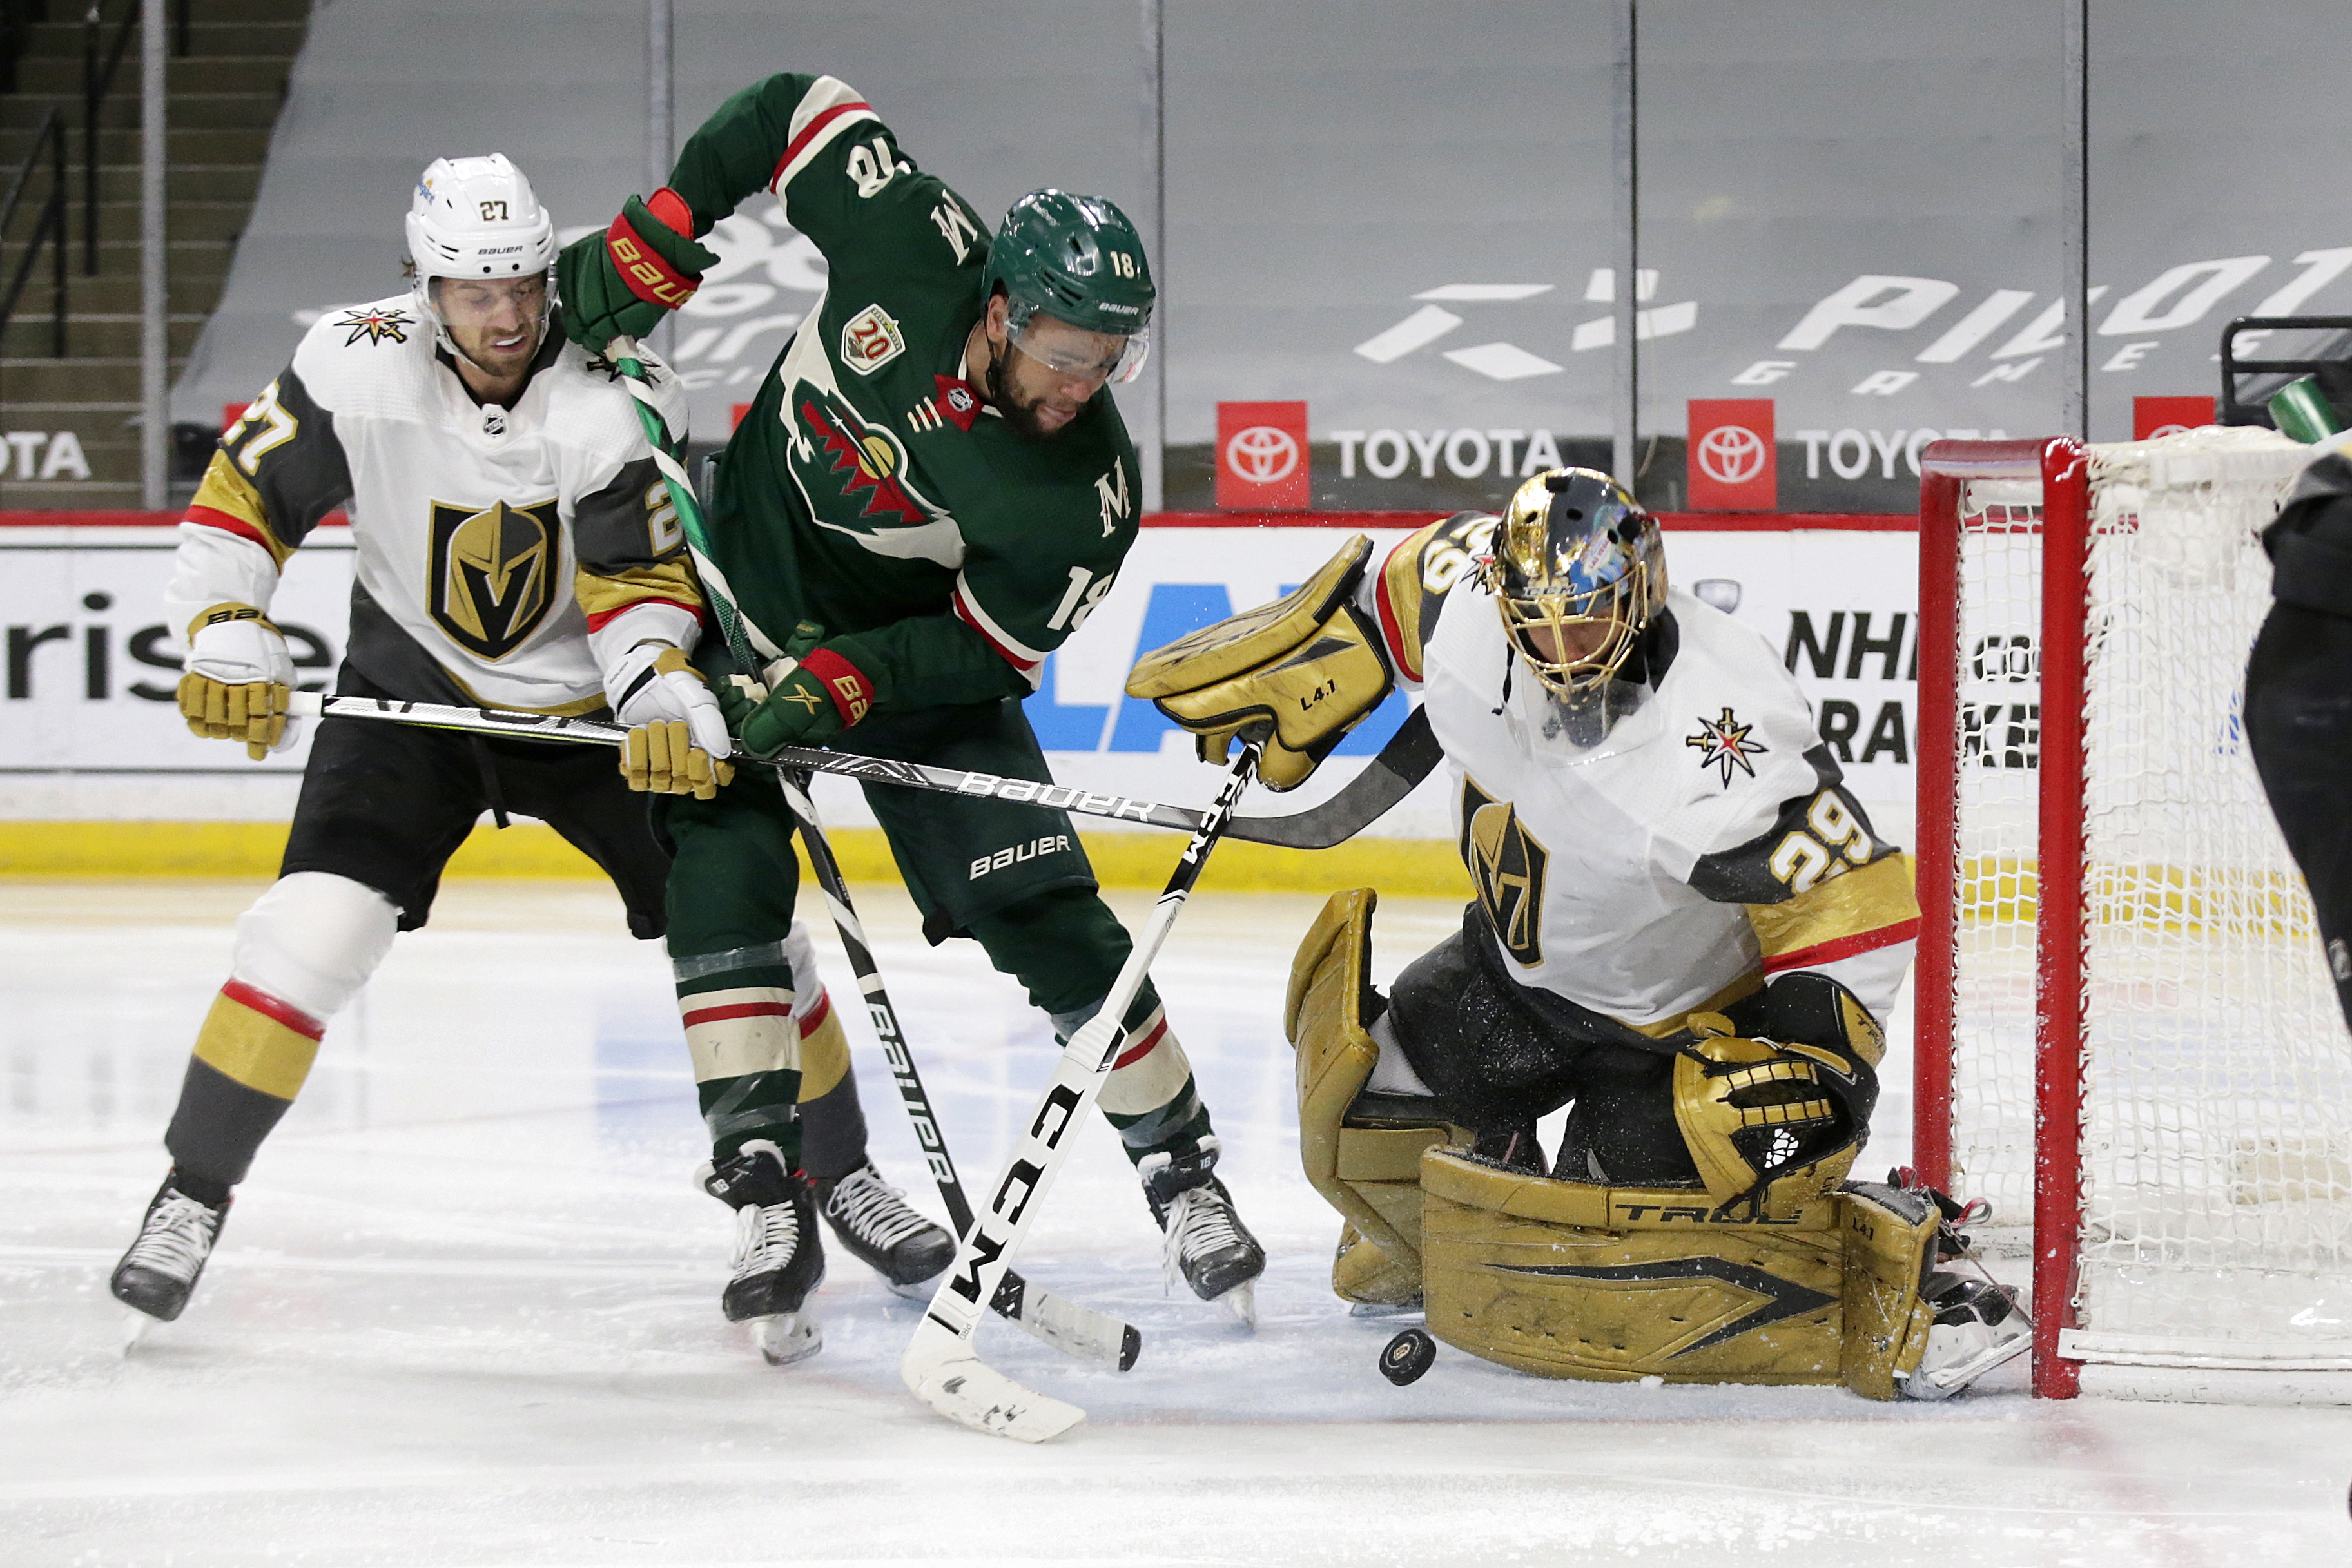 Marc-Andre Fleury moves into 3rd on NHL career wins list